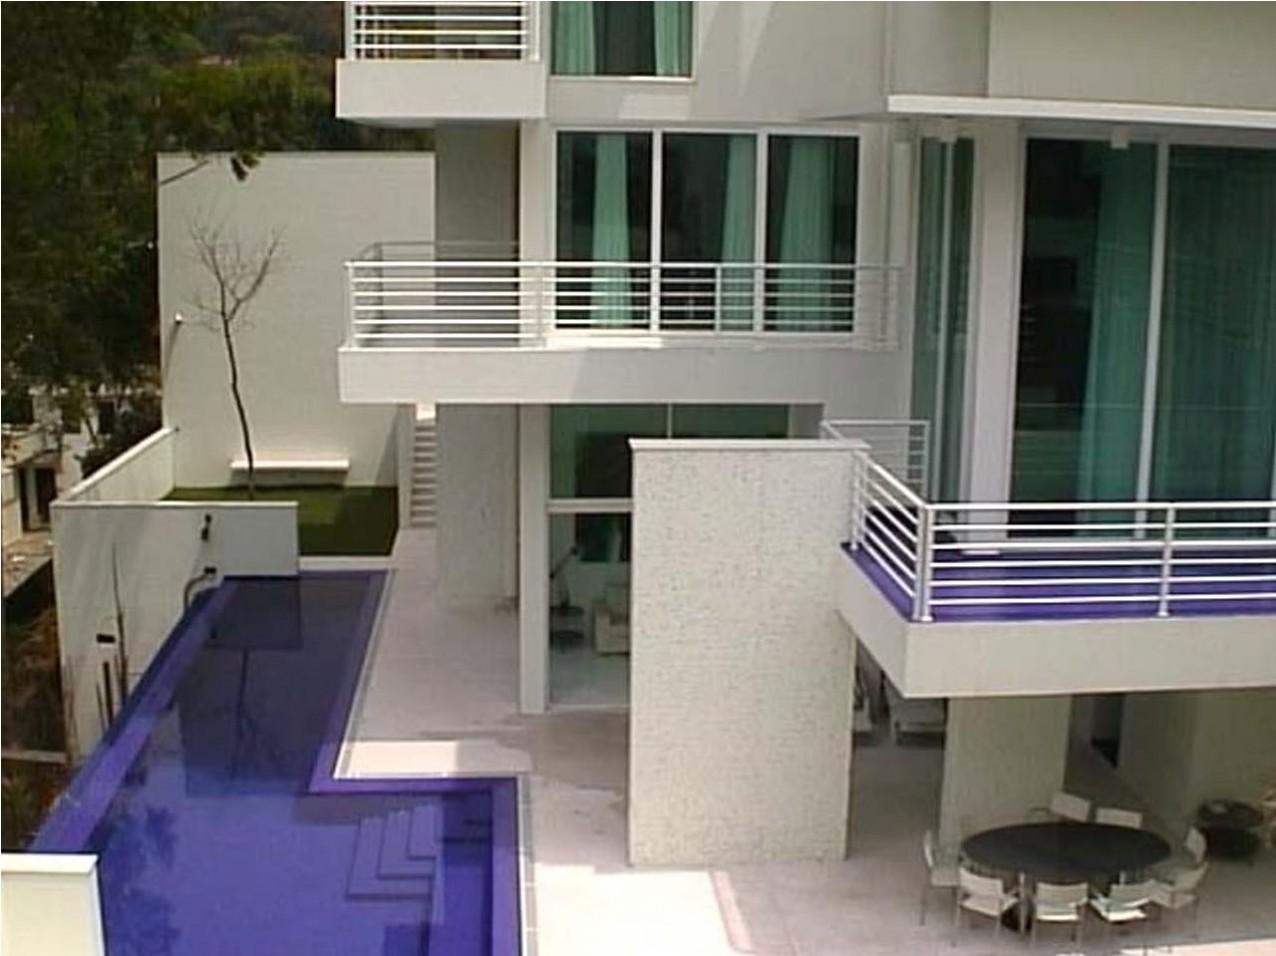 Obra residencial - Real Parque 1